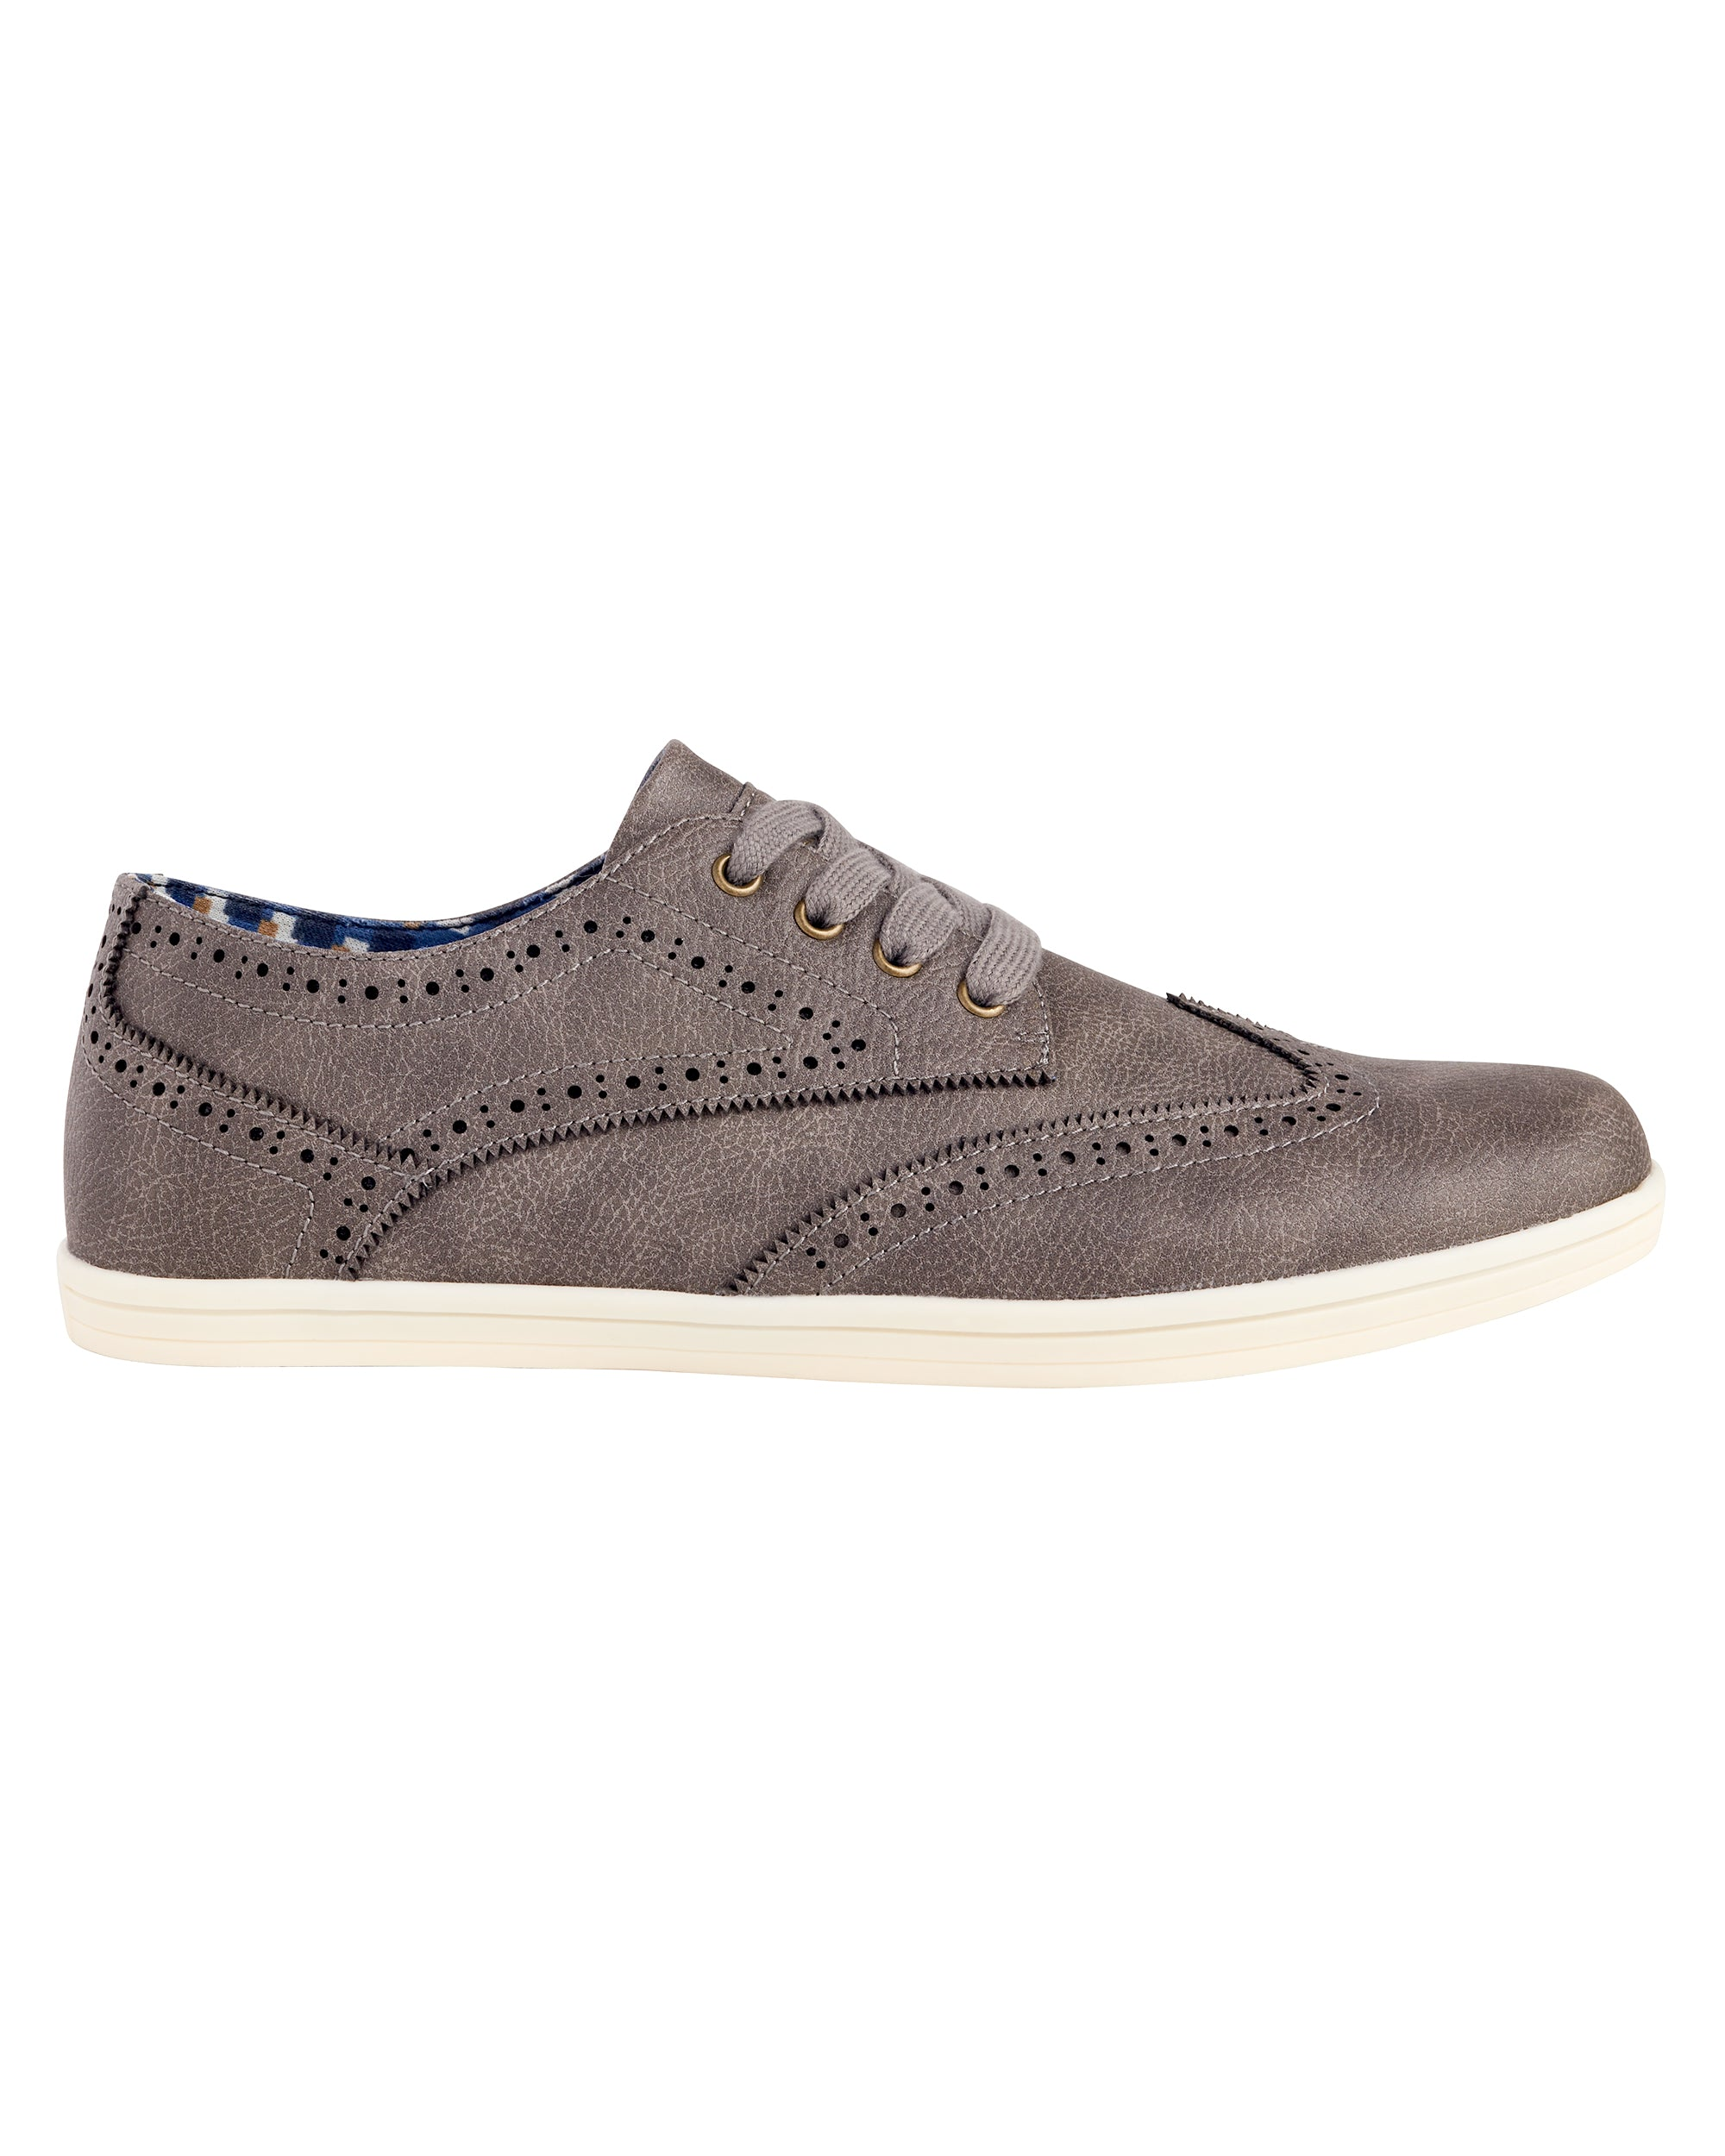 Nick Wingtip Oxford Sneaker - Light Grey